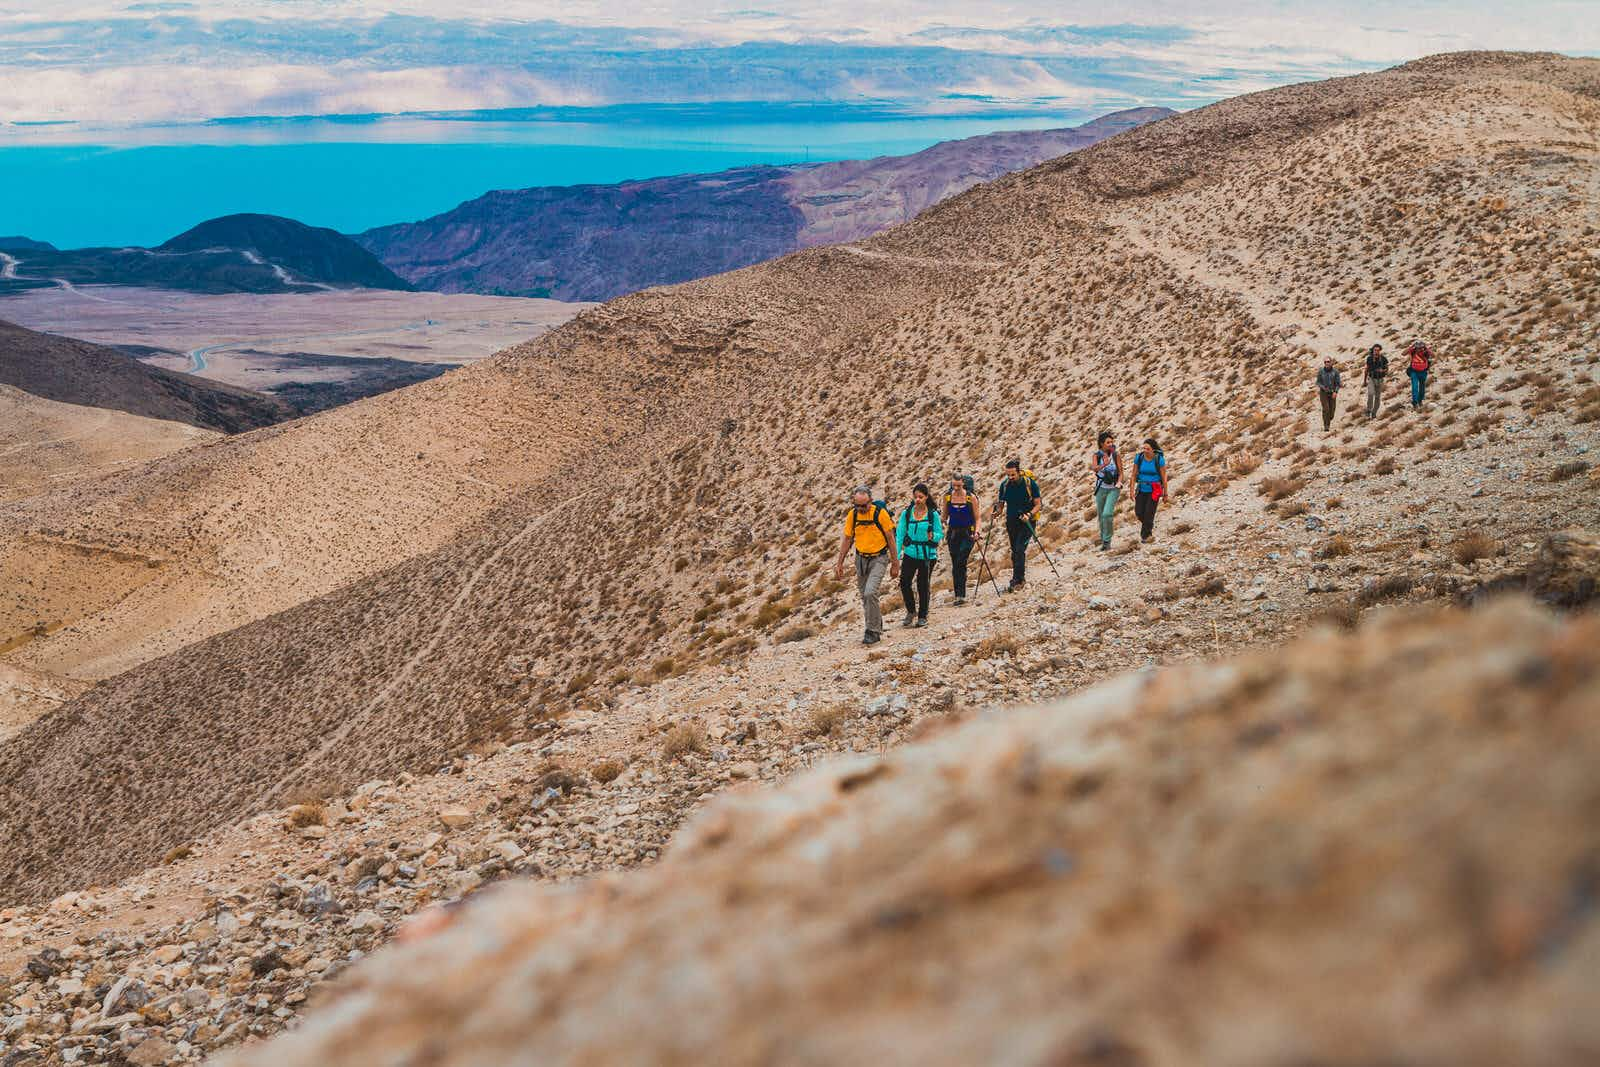 Hiking the Jordan Trail, the Middle East's new cross-country trek